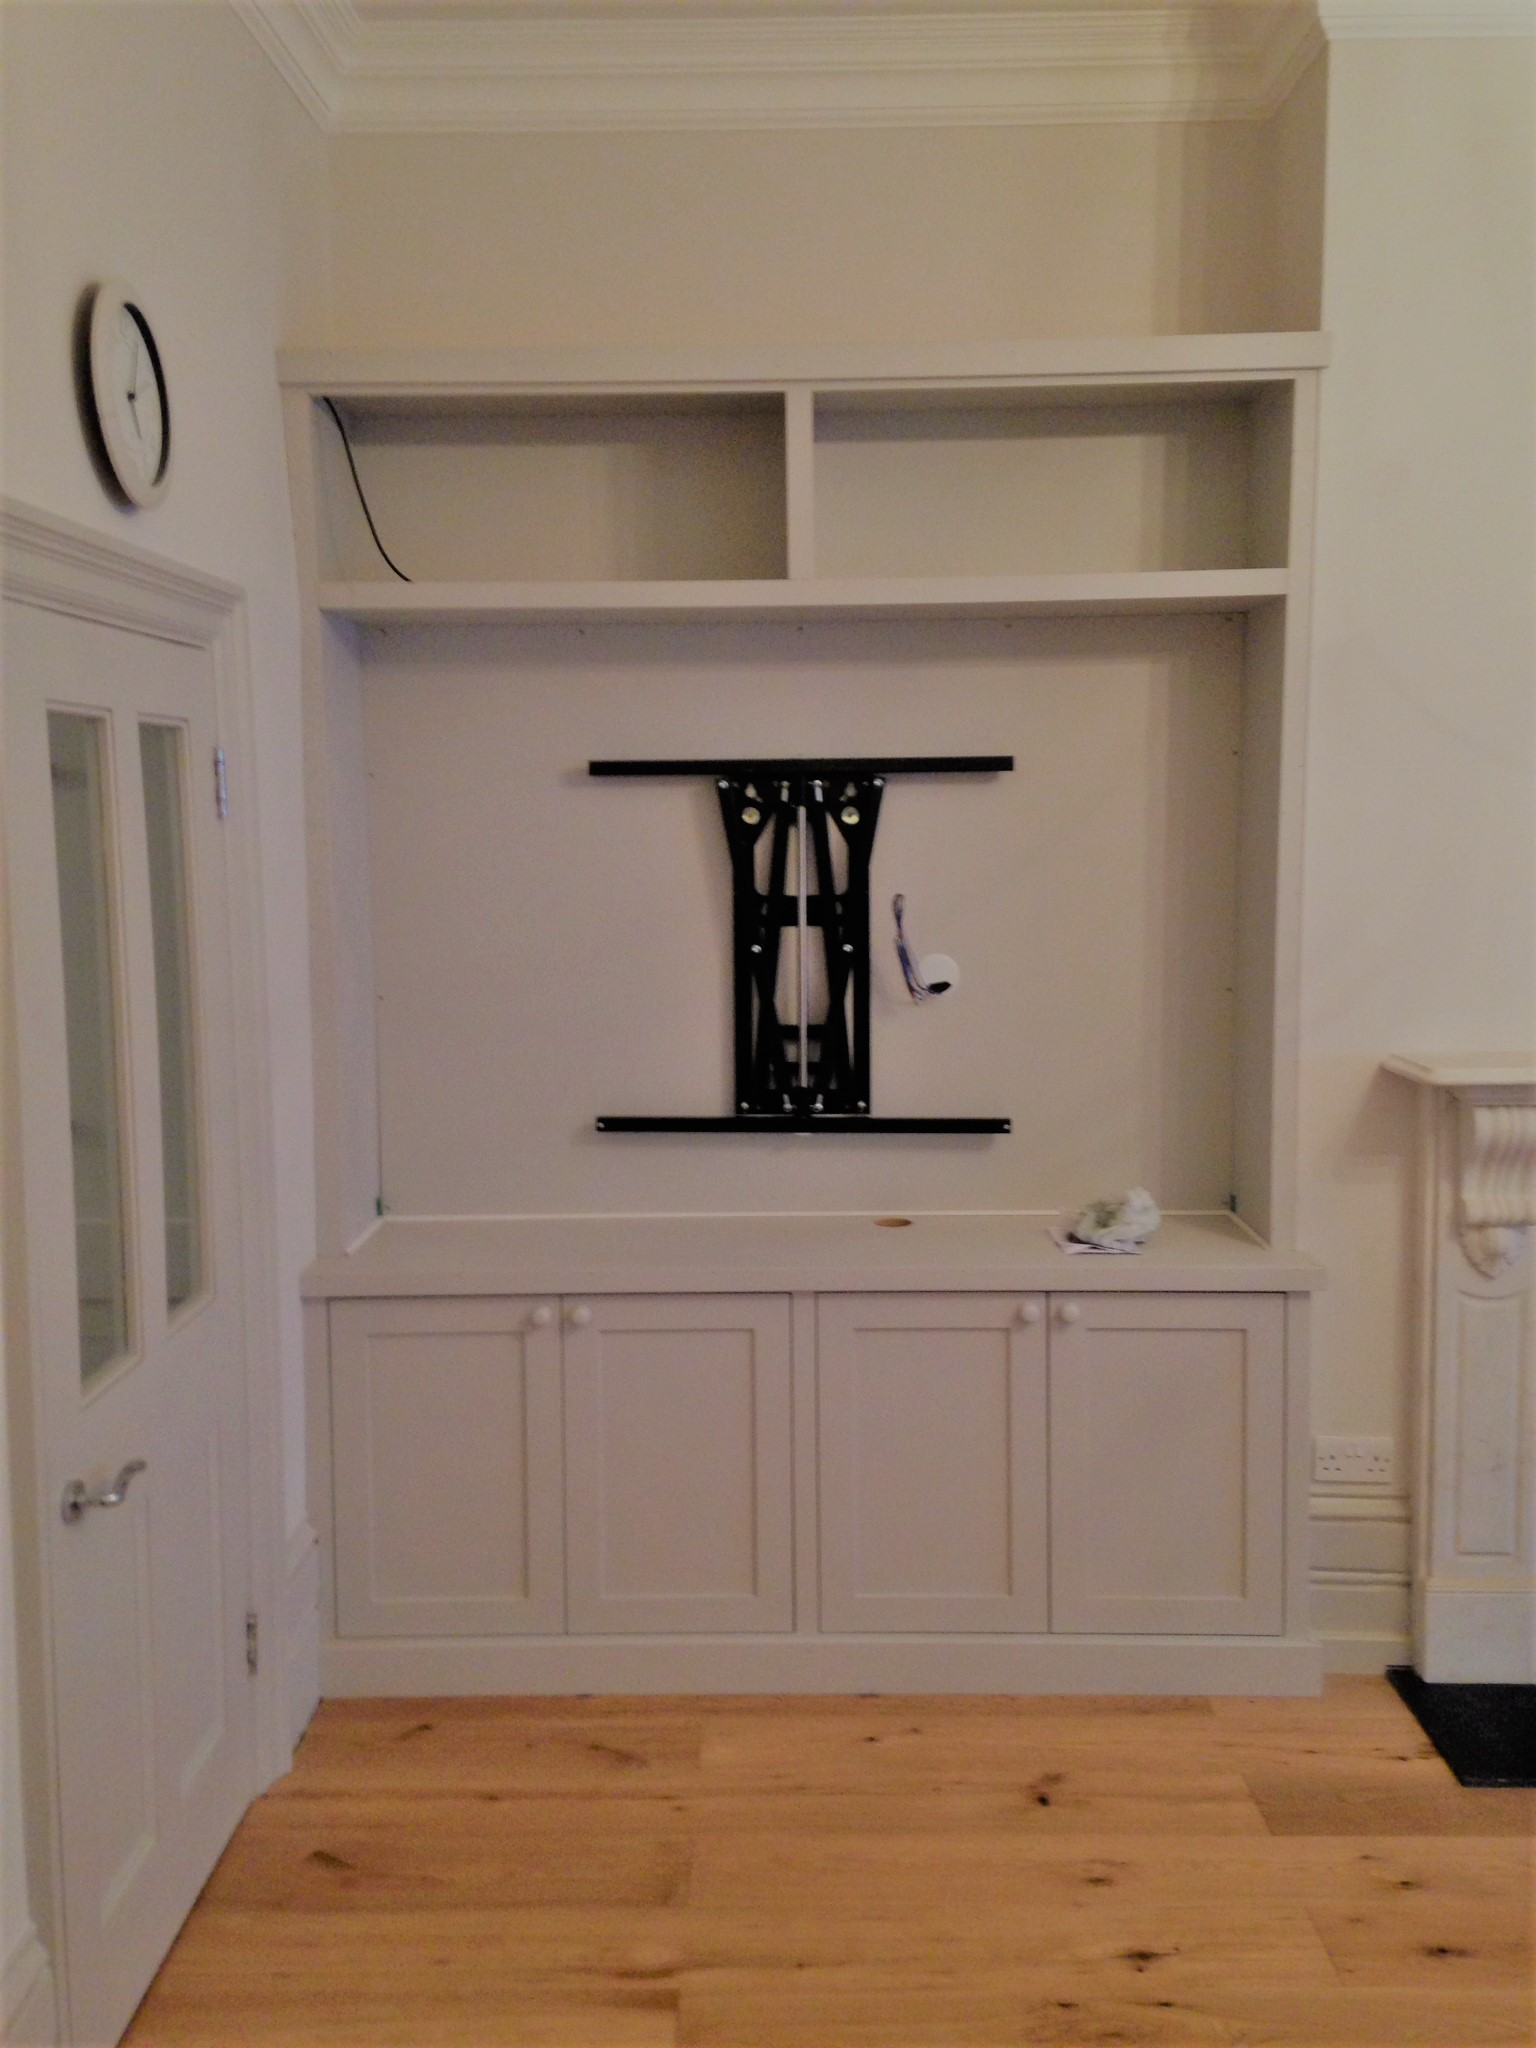 This bespoke cabinet shows how the cabling for a television can be hidden by using wire holes in the top box vertically above the wire hole in the bottom cabinet.